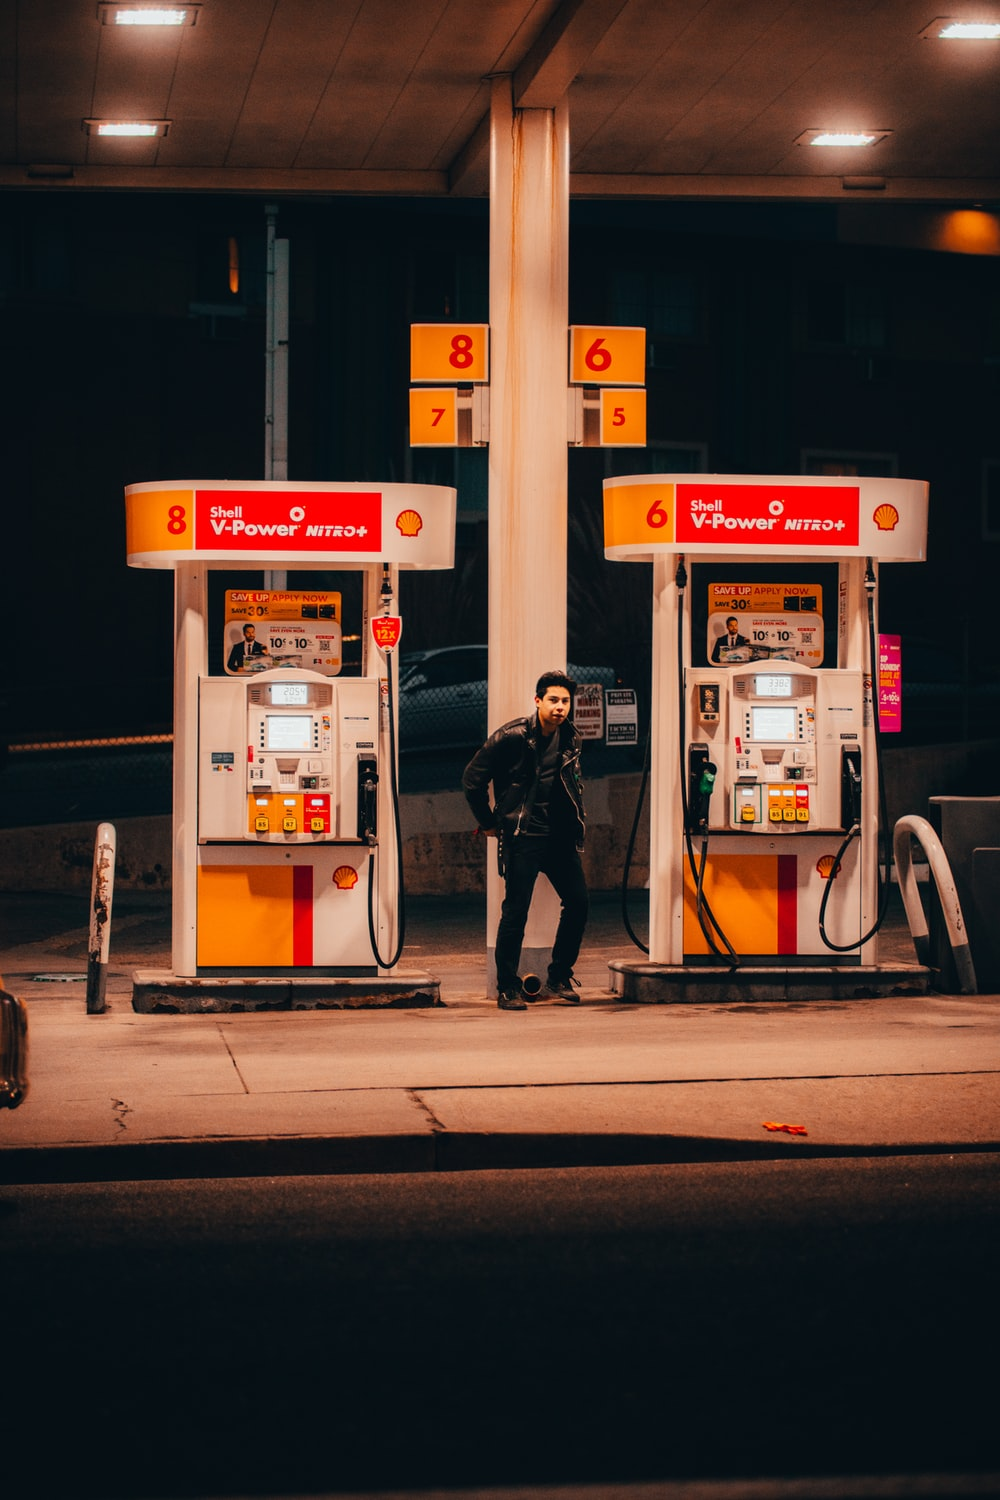 man in black jacket standing near white and red gas pump